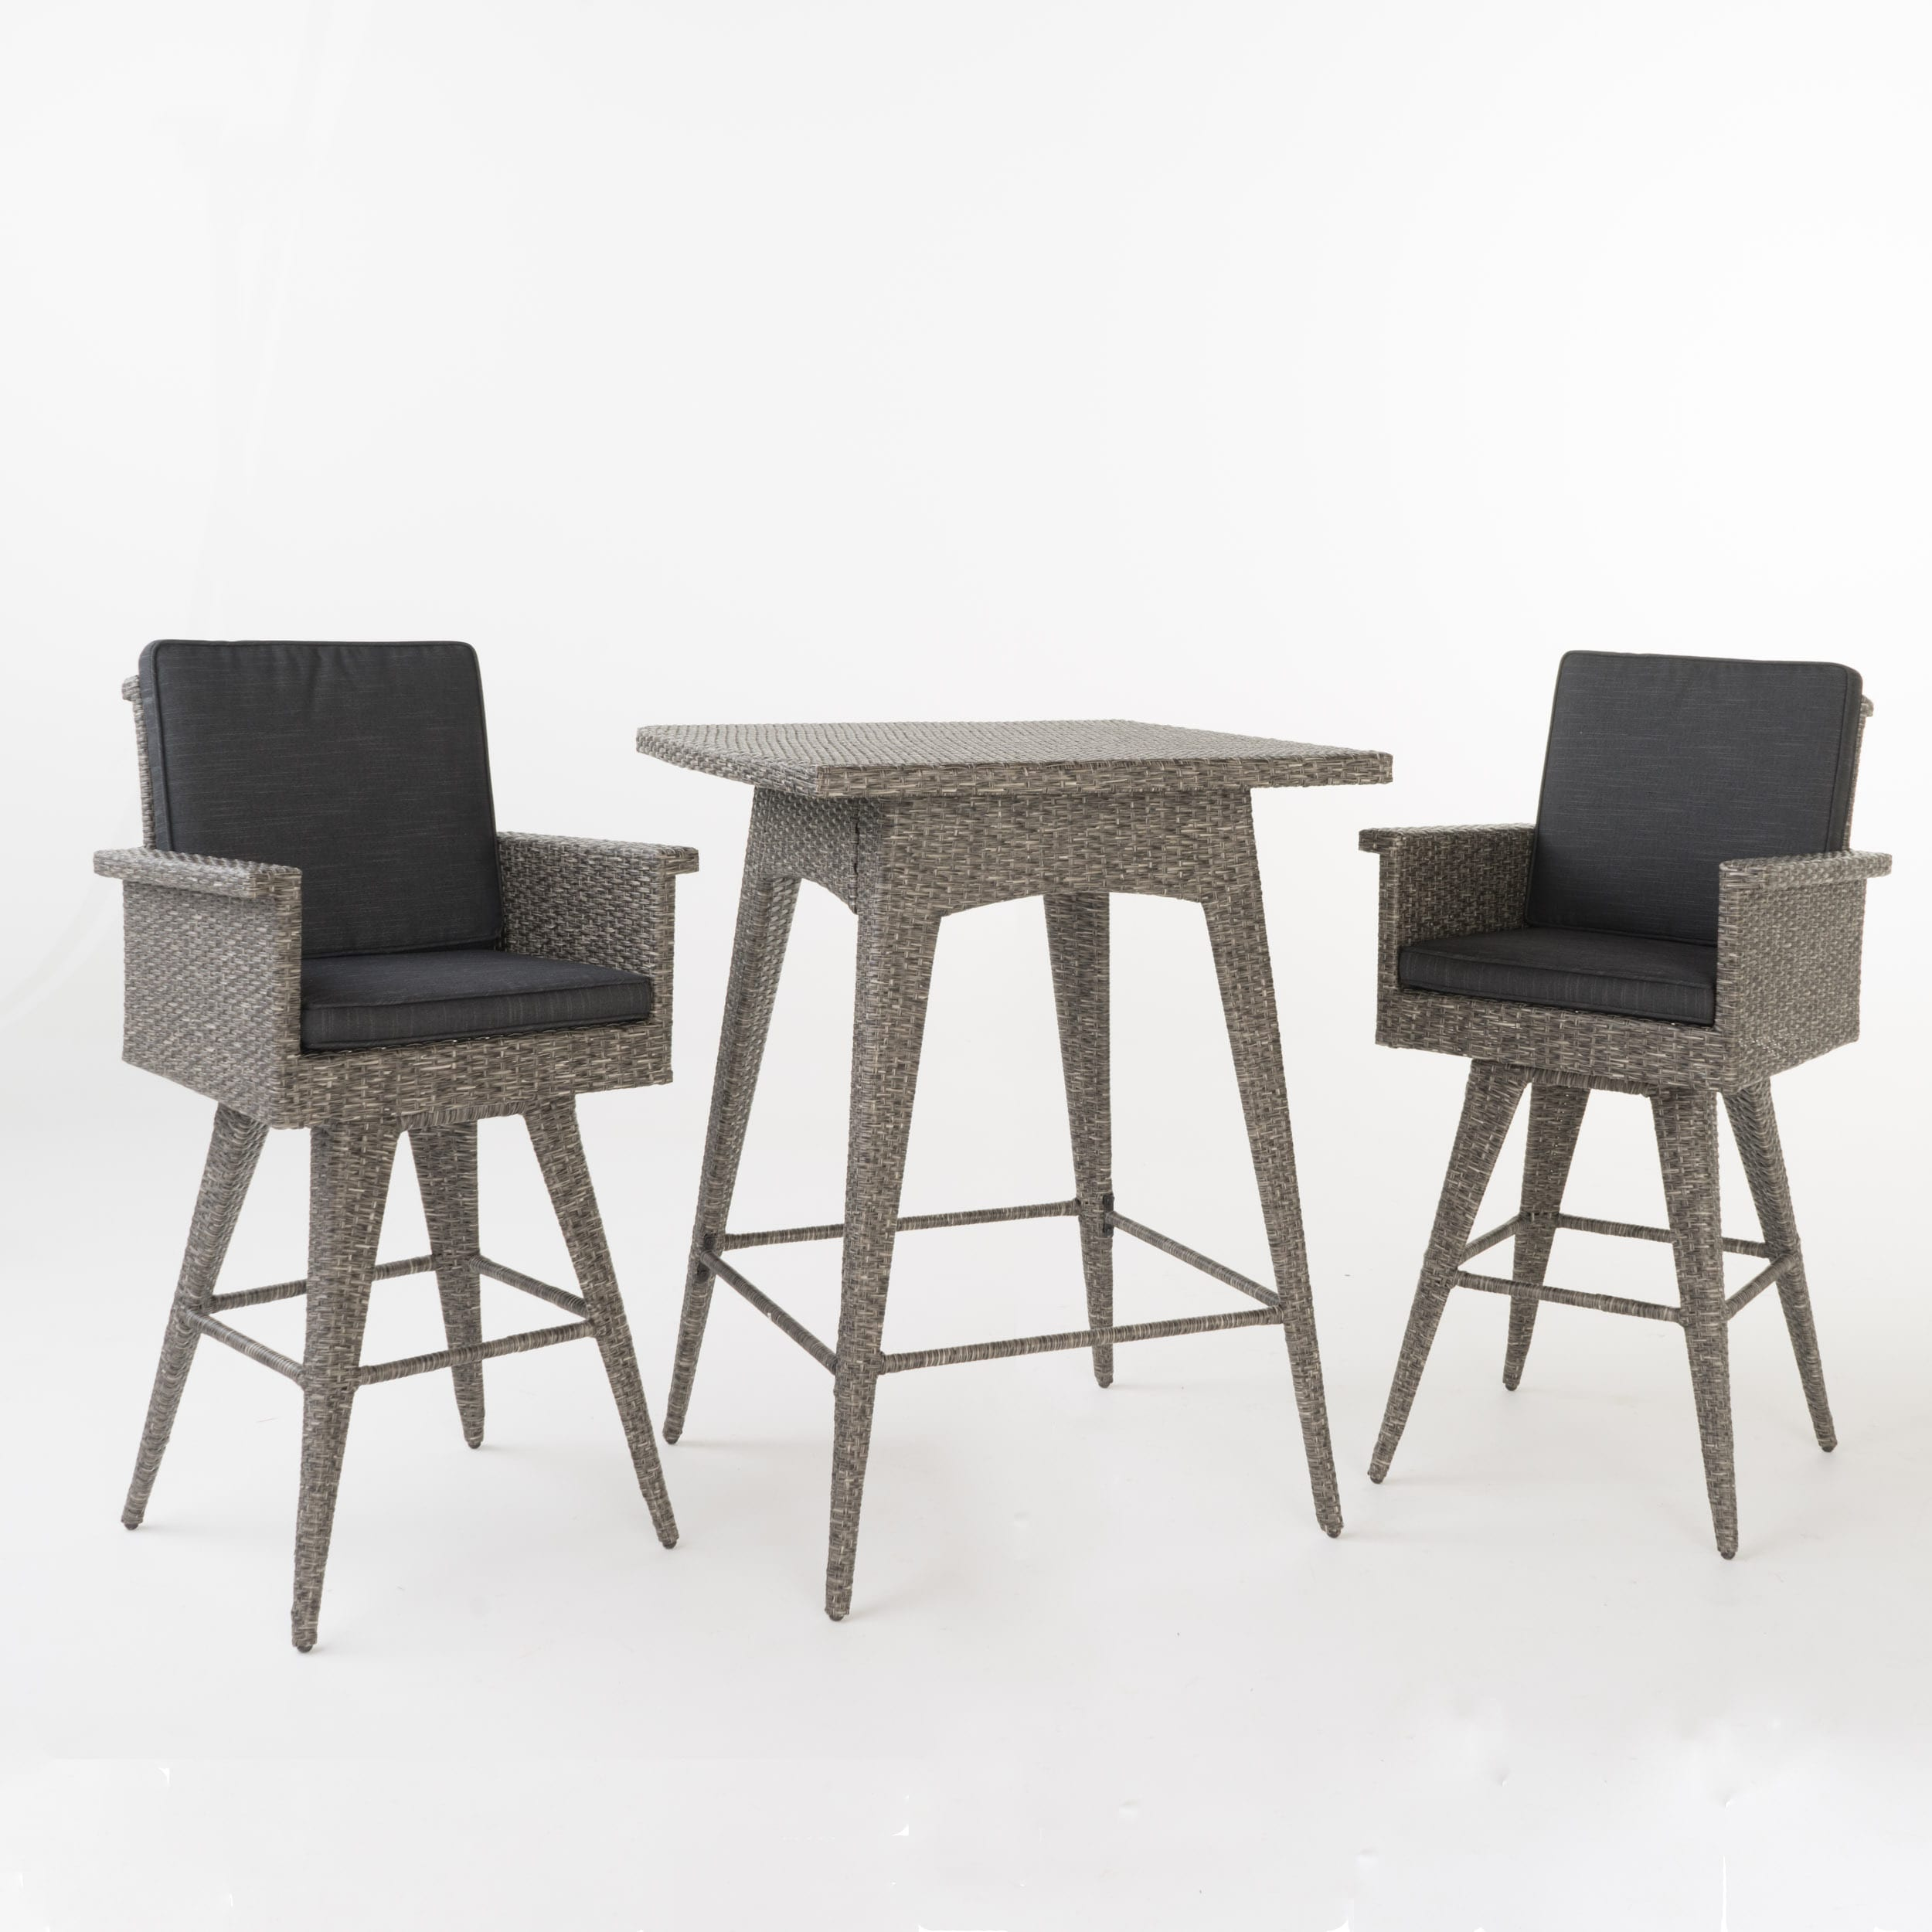 Puerta Outdoor 3-piece Wicker Dining Bar Set with Cushions by ...